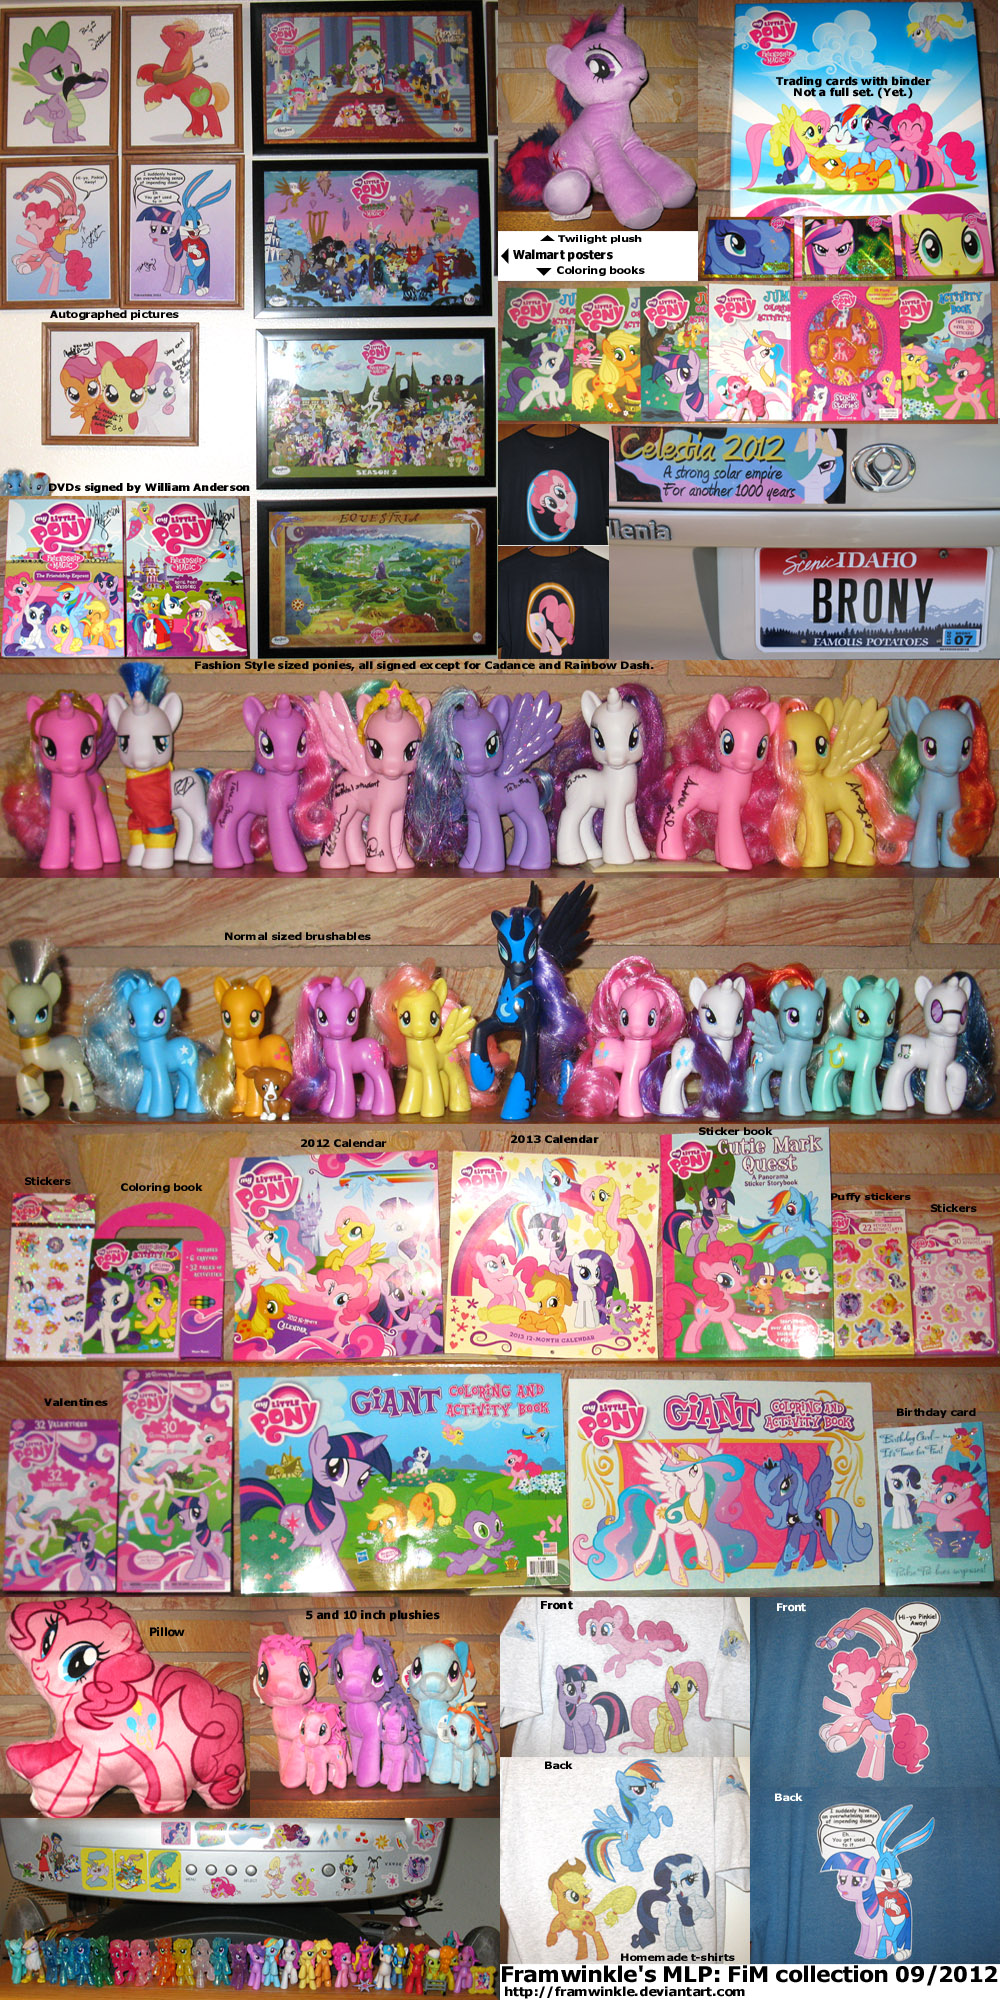 Framwinkle's MLP: FiM collection 2012-09